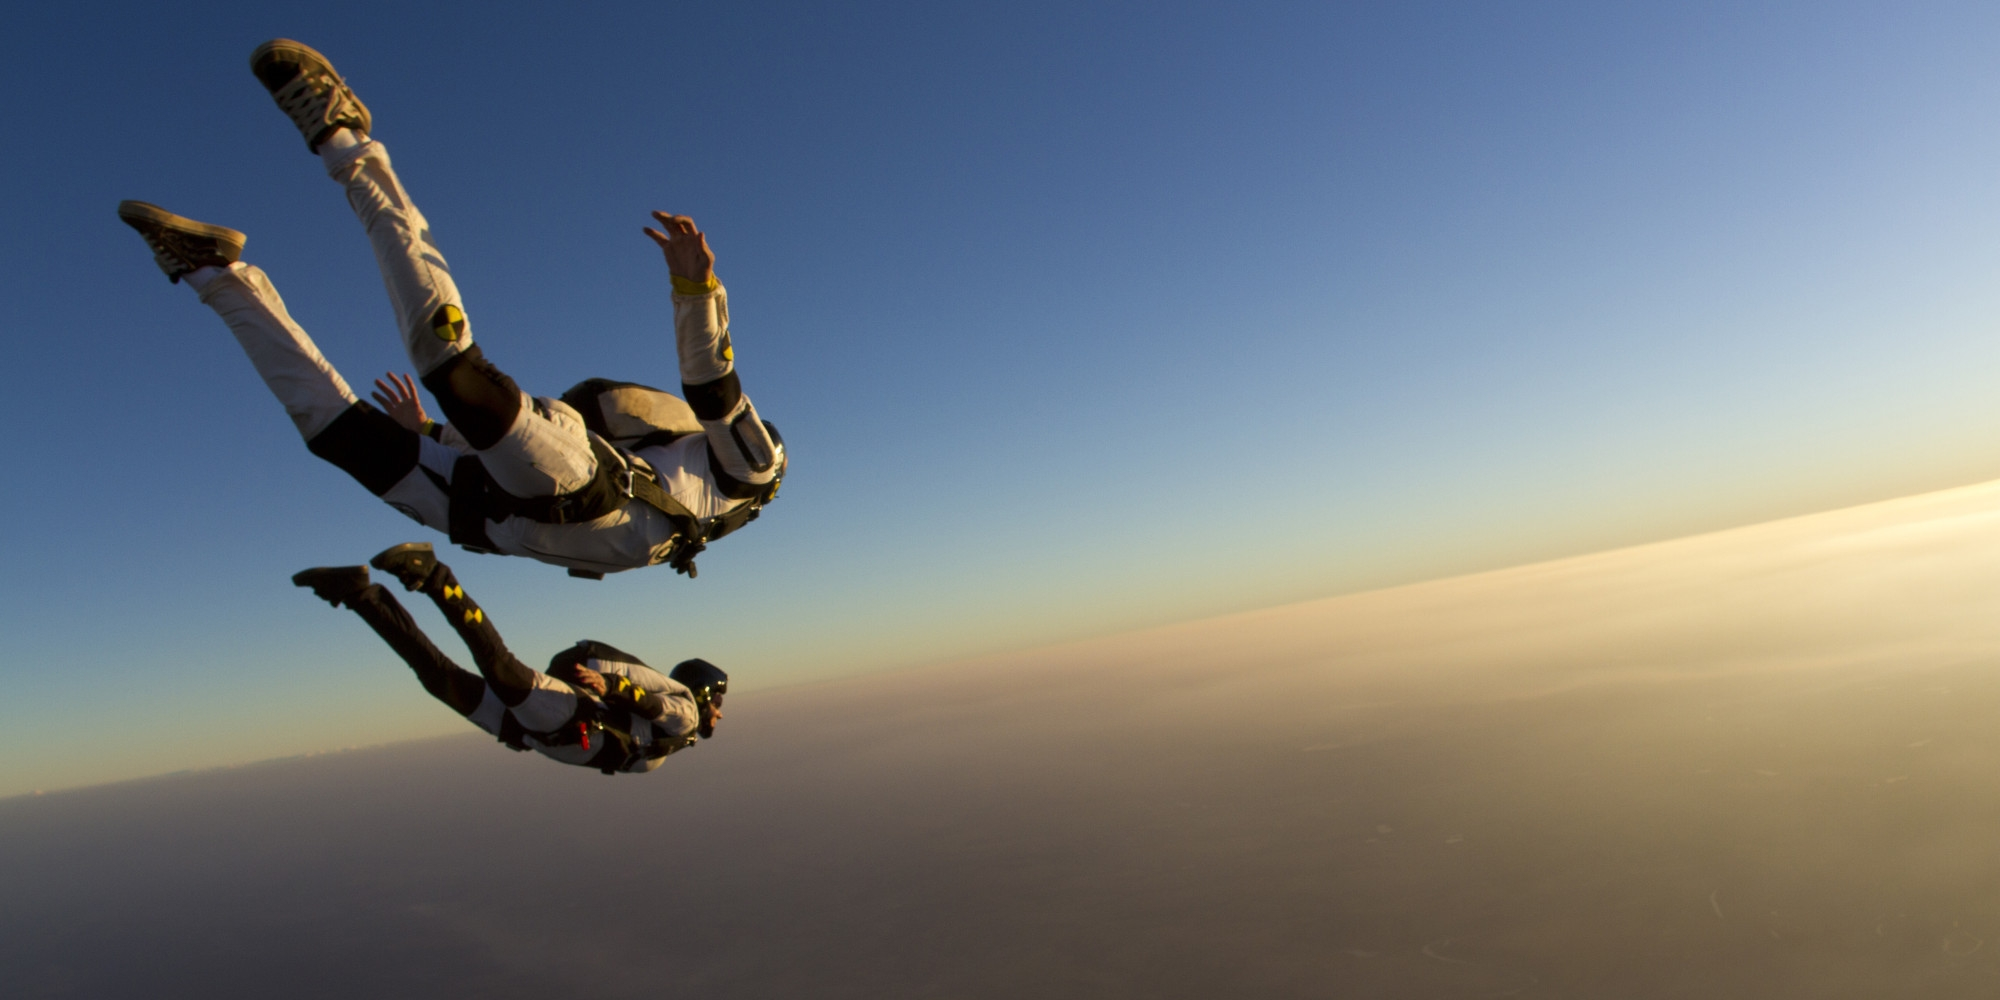 2000x1000 - Skydiving Wallpapers 30